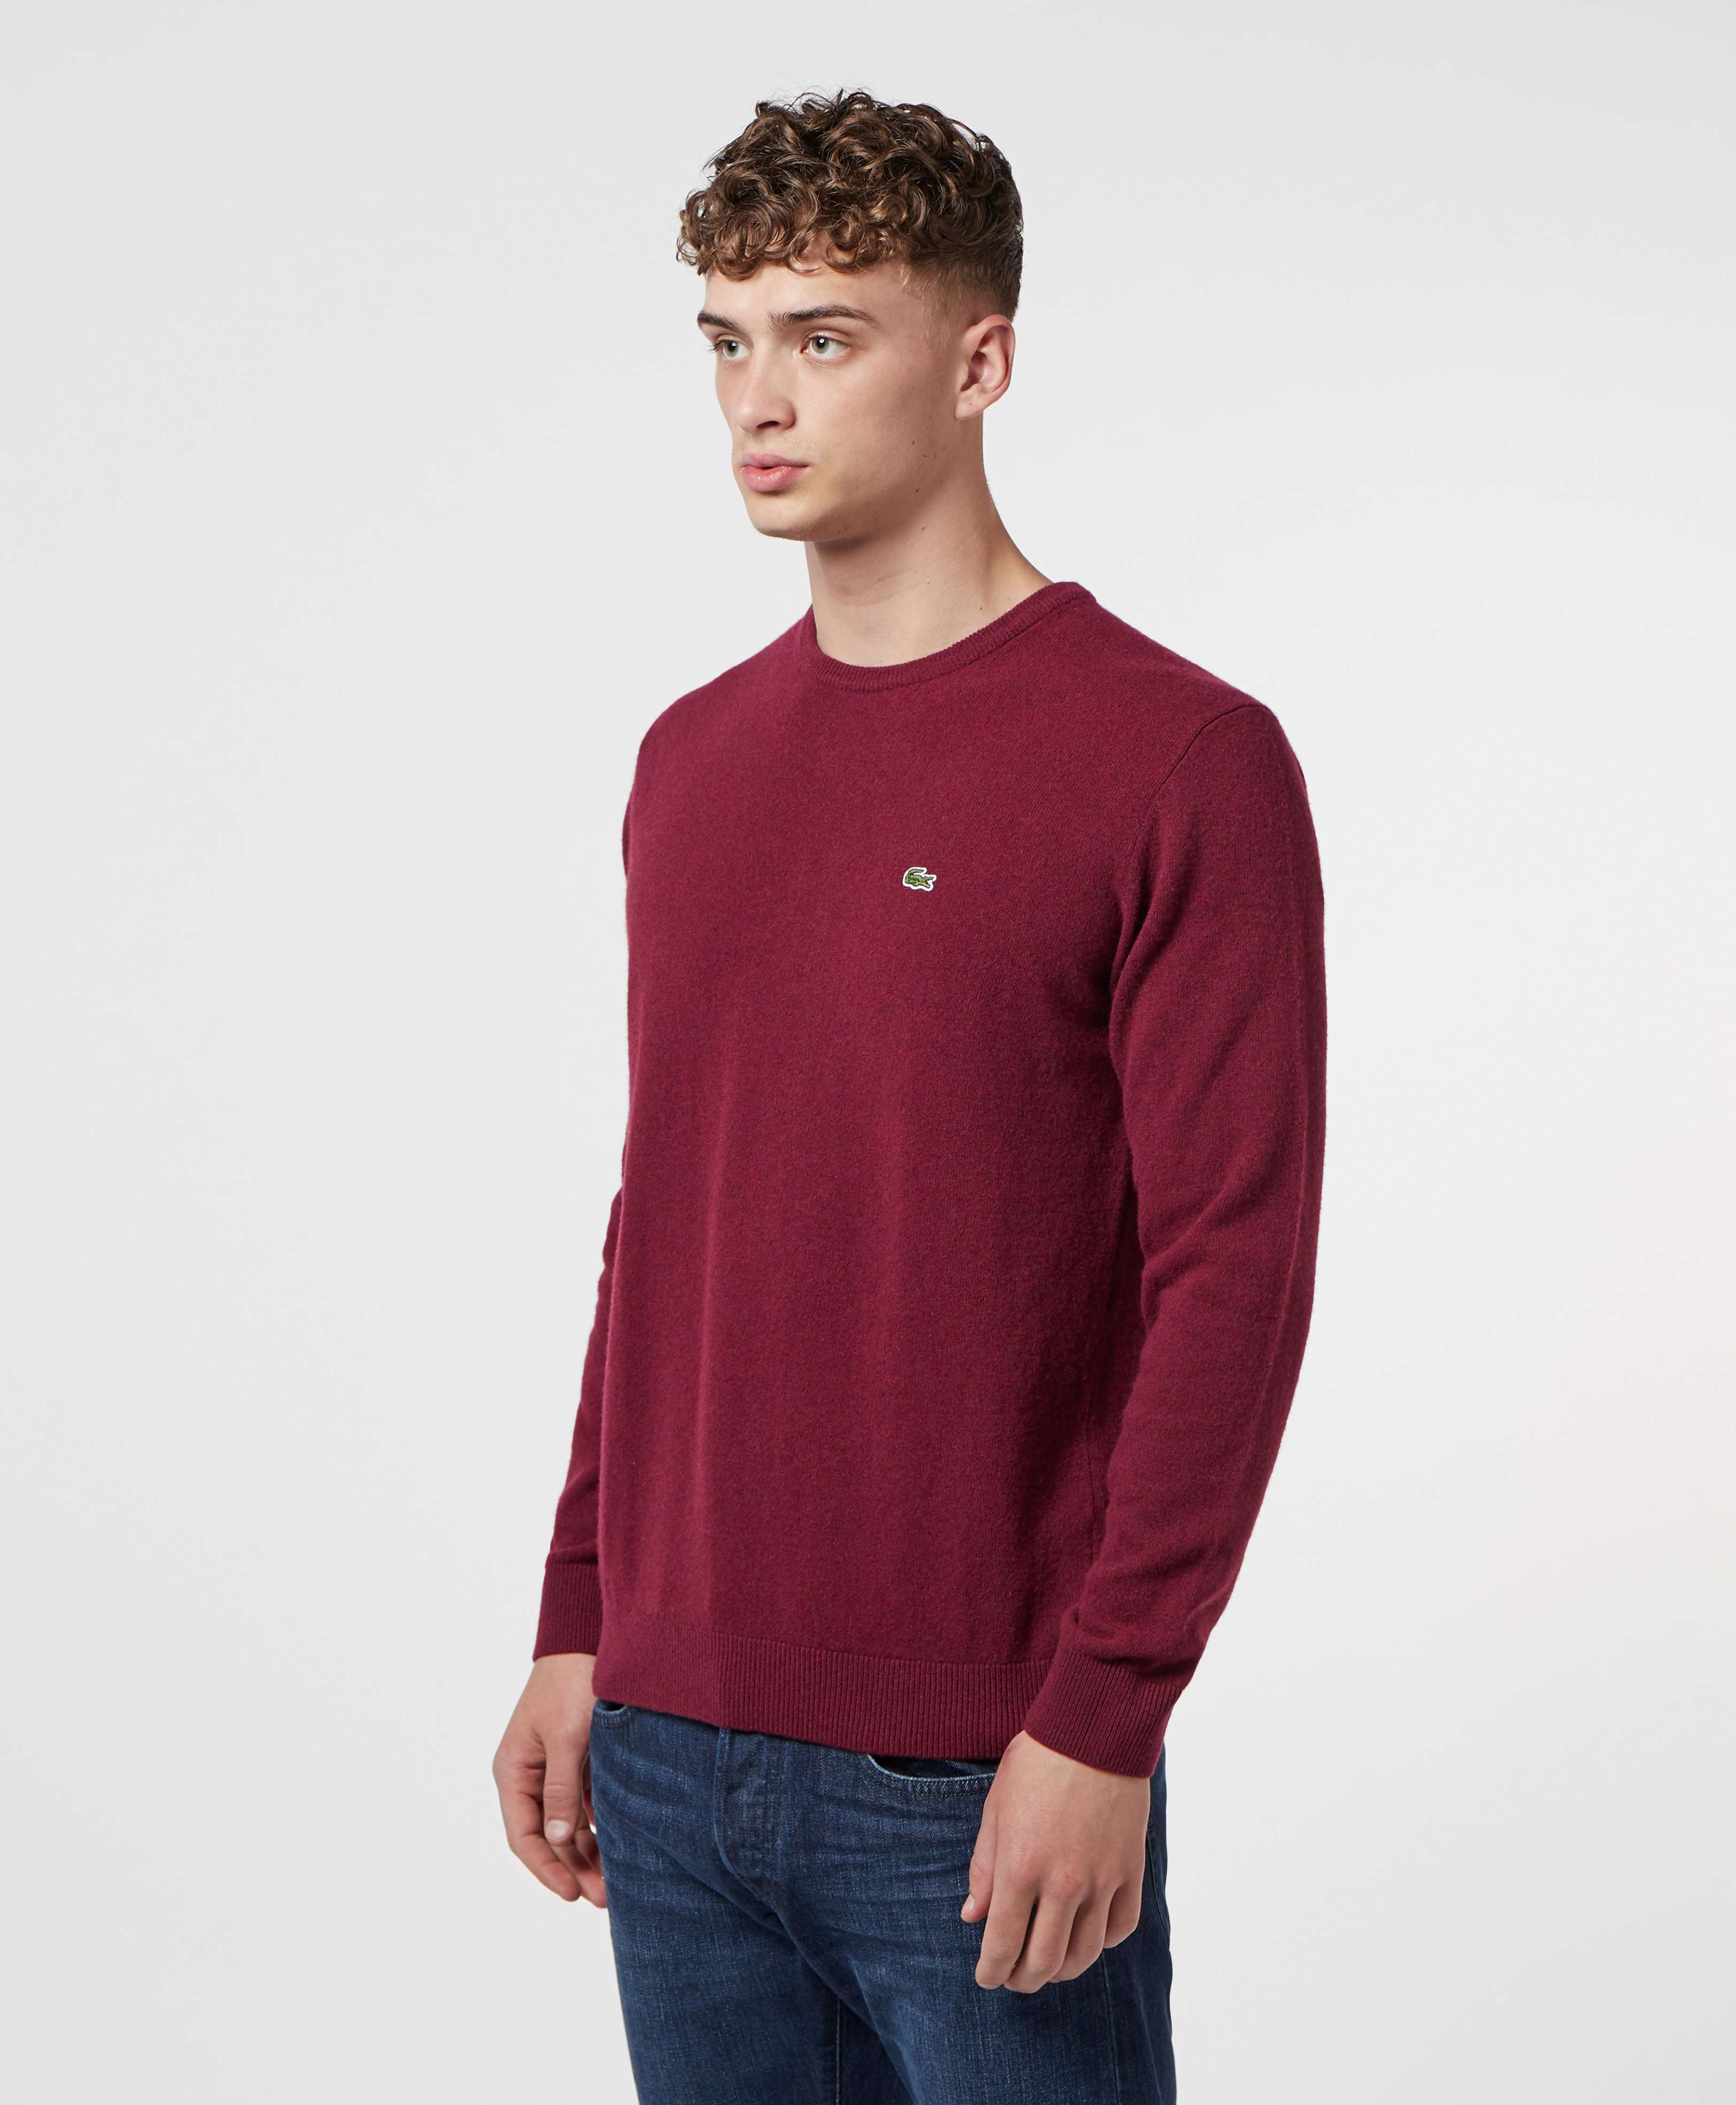 Lacoste Classic Knitted Jumper